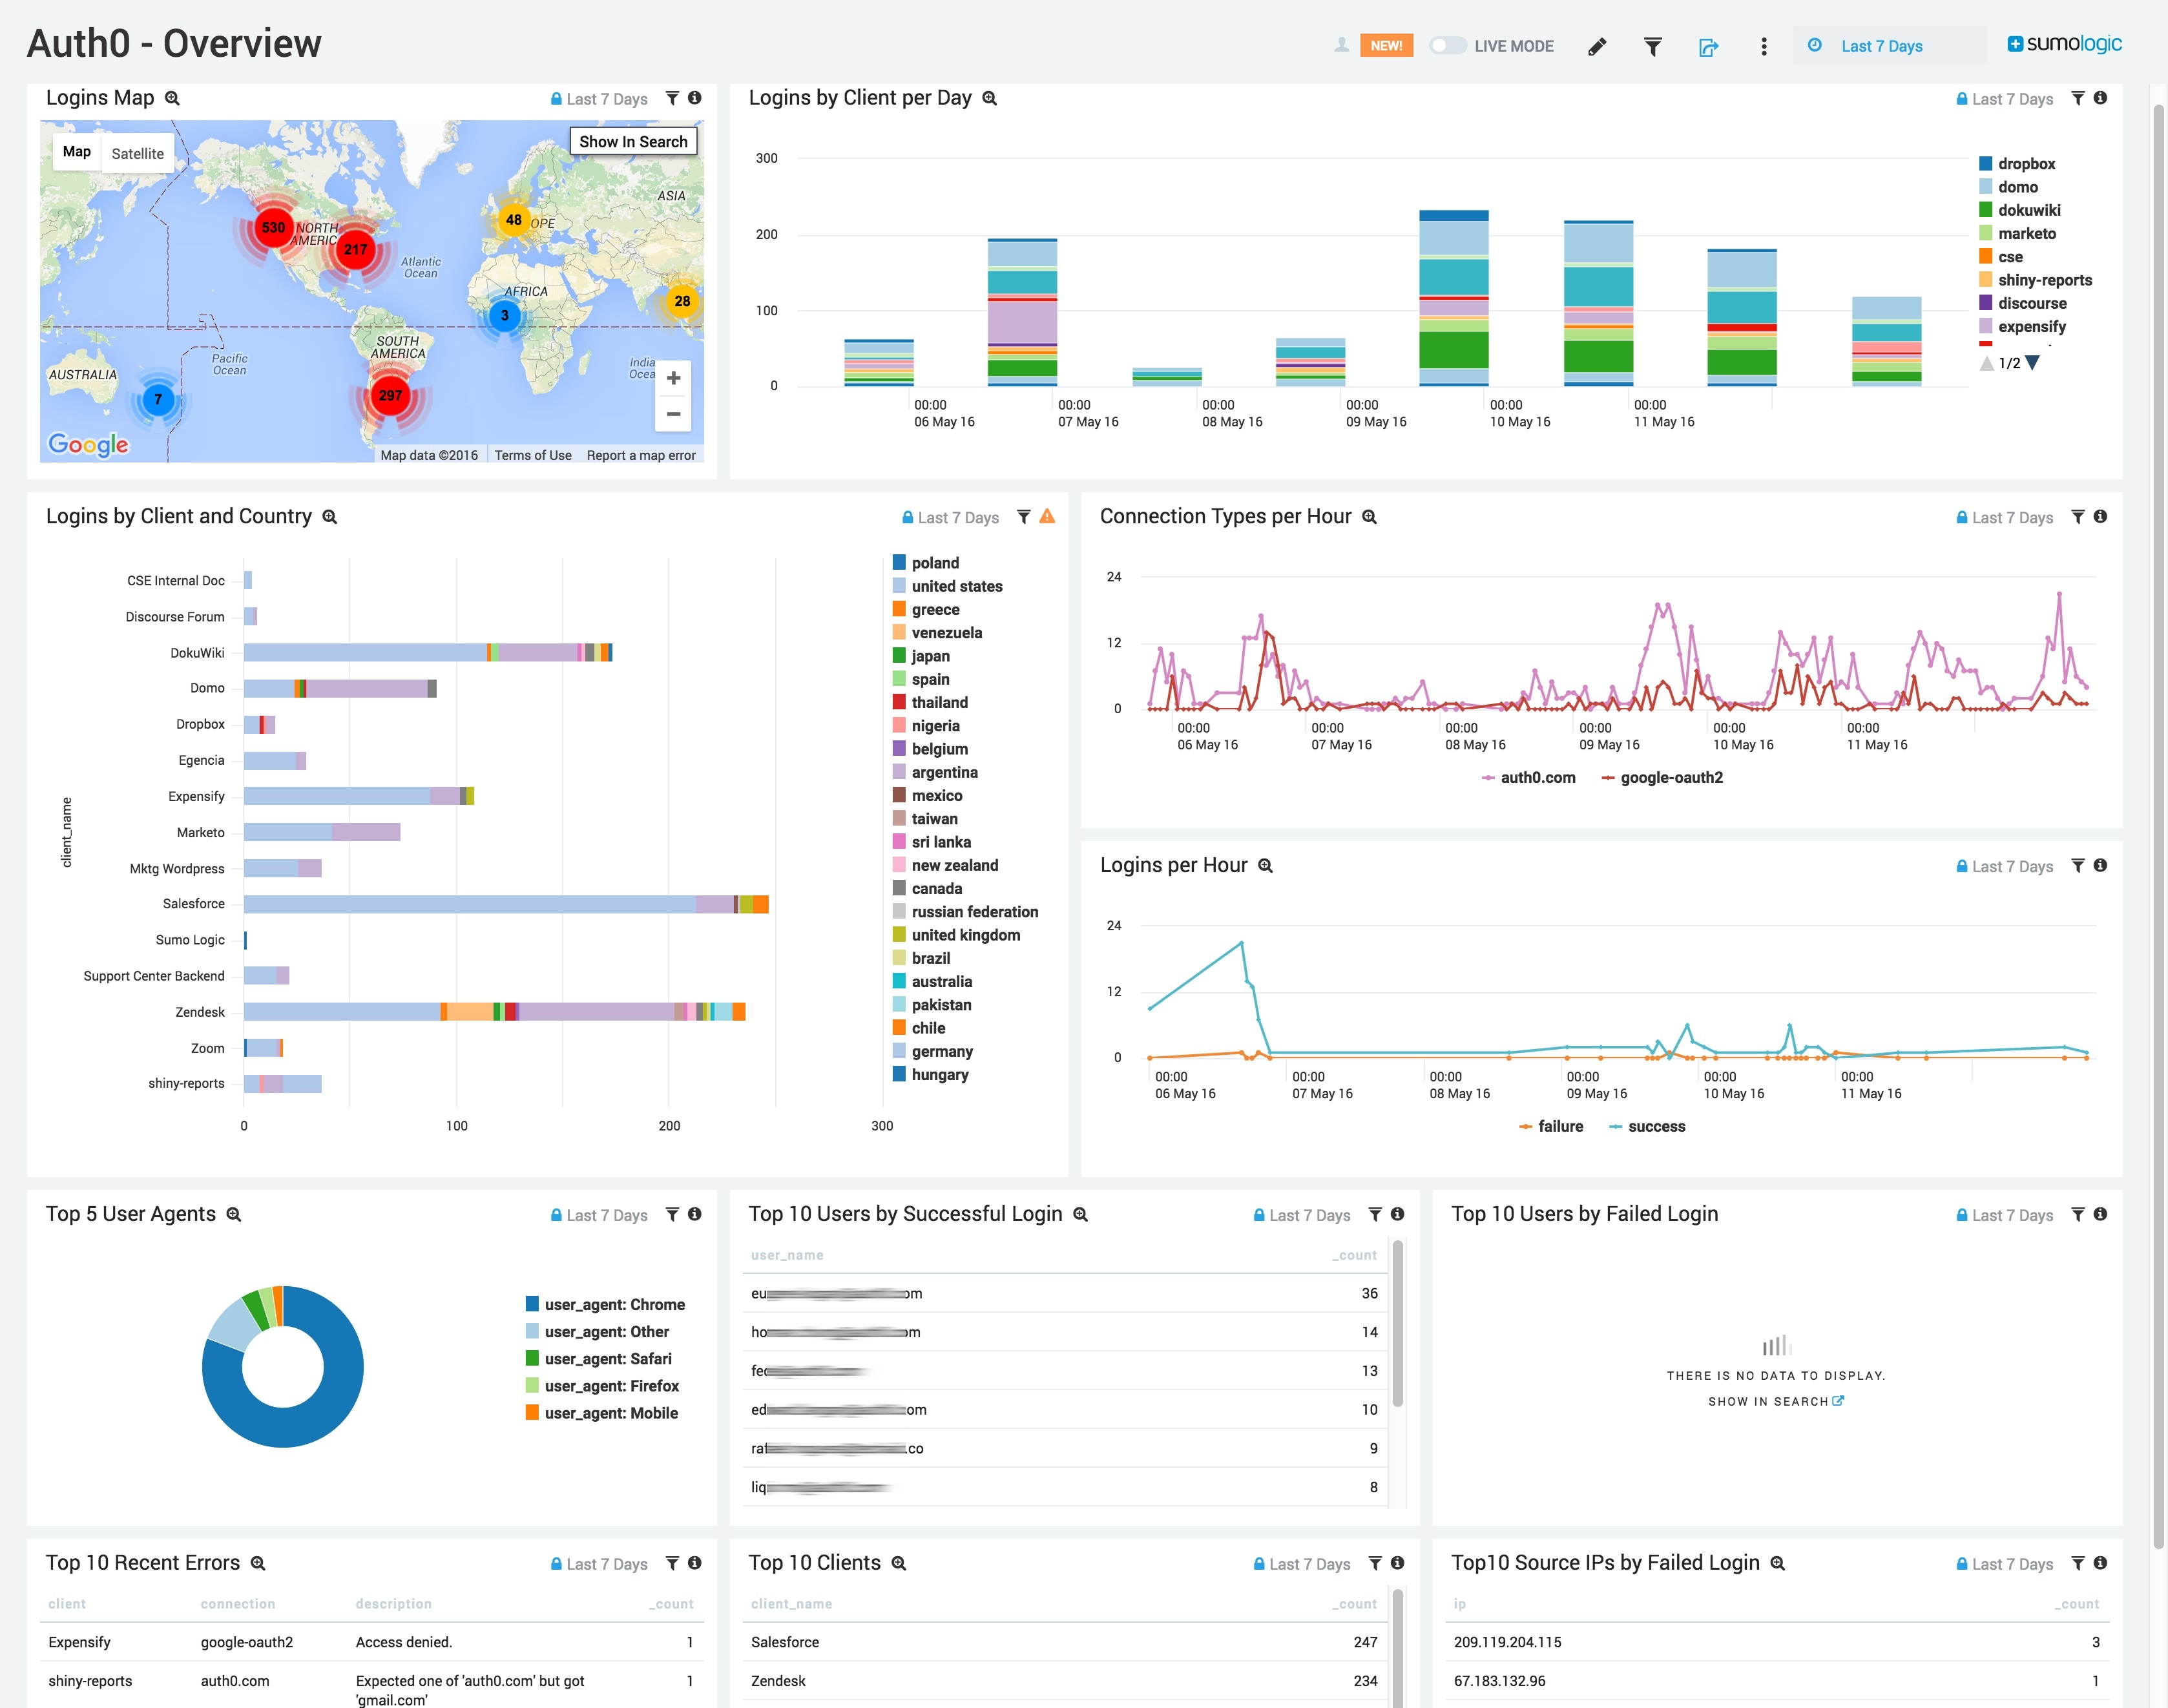 Sumo Logic dashboard for Auth0 logs